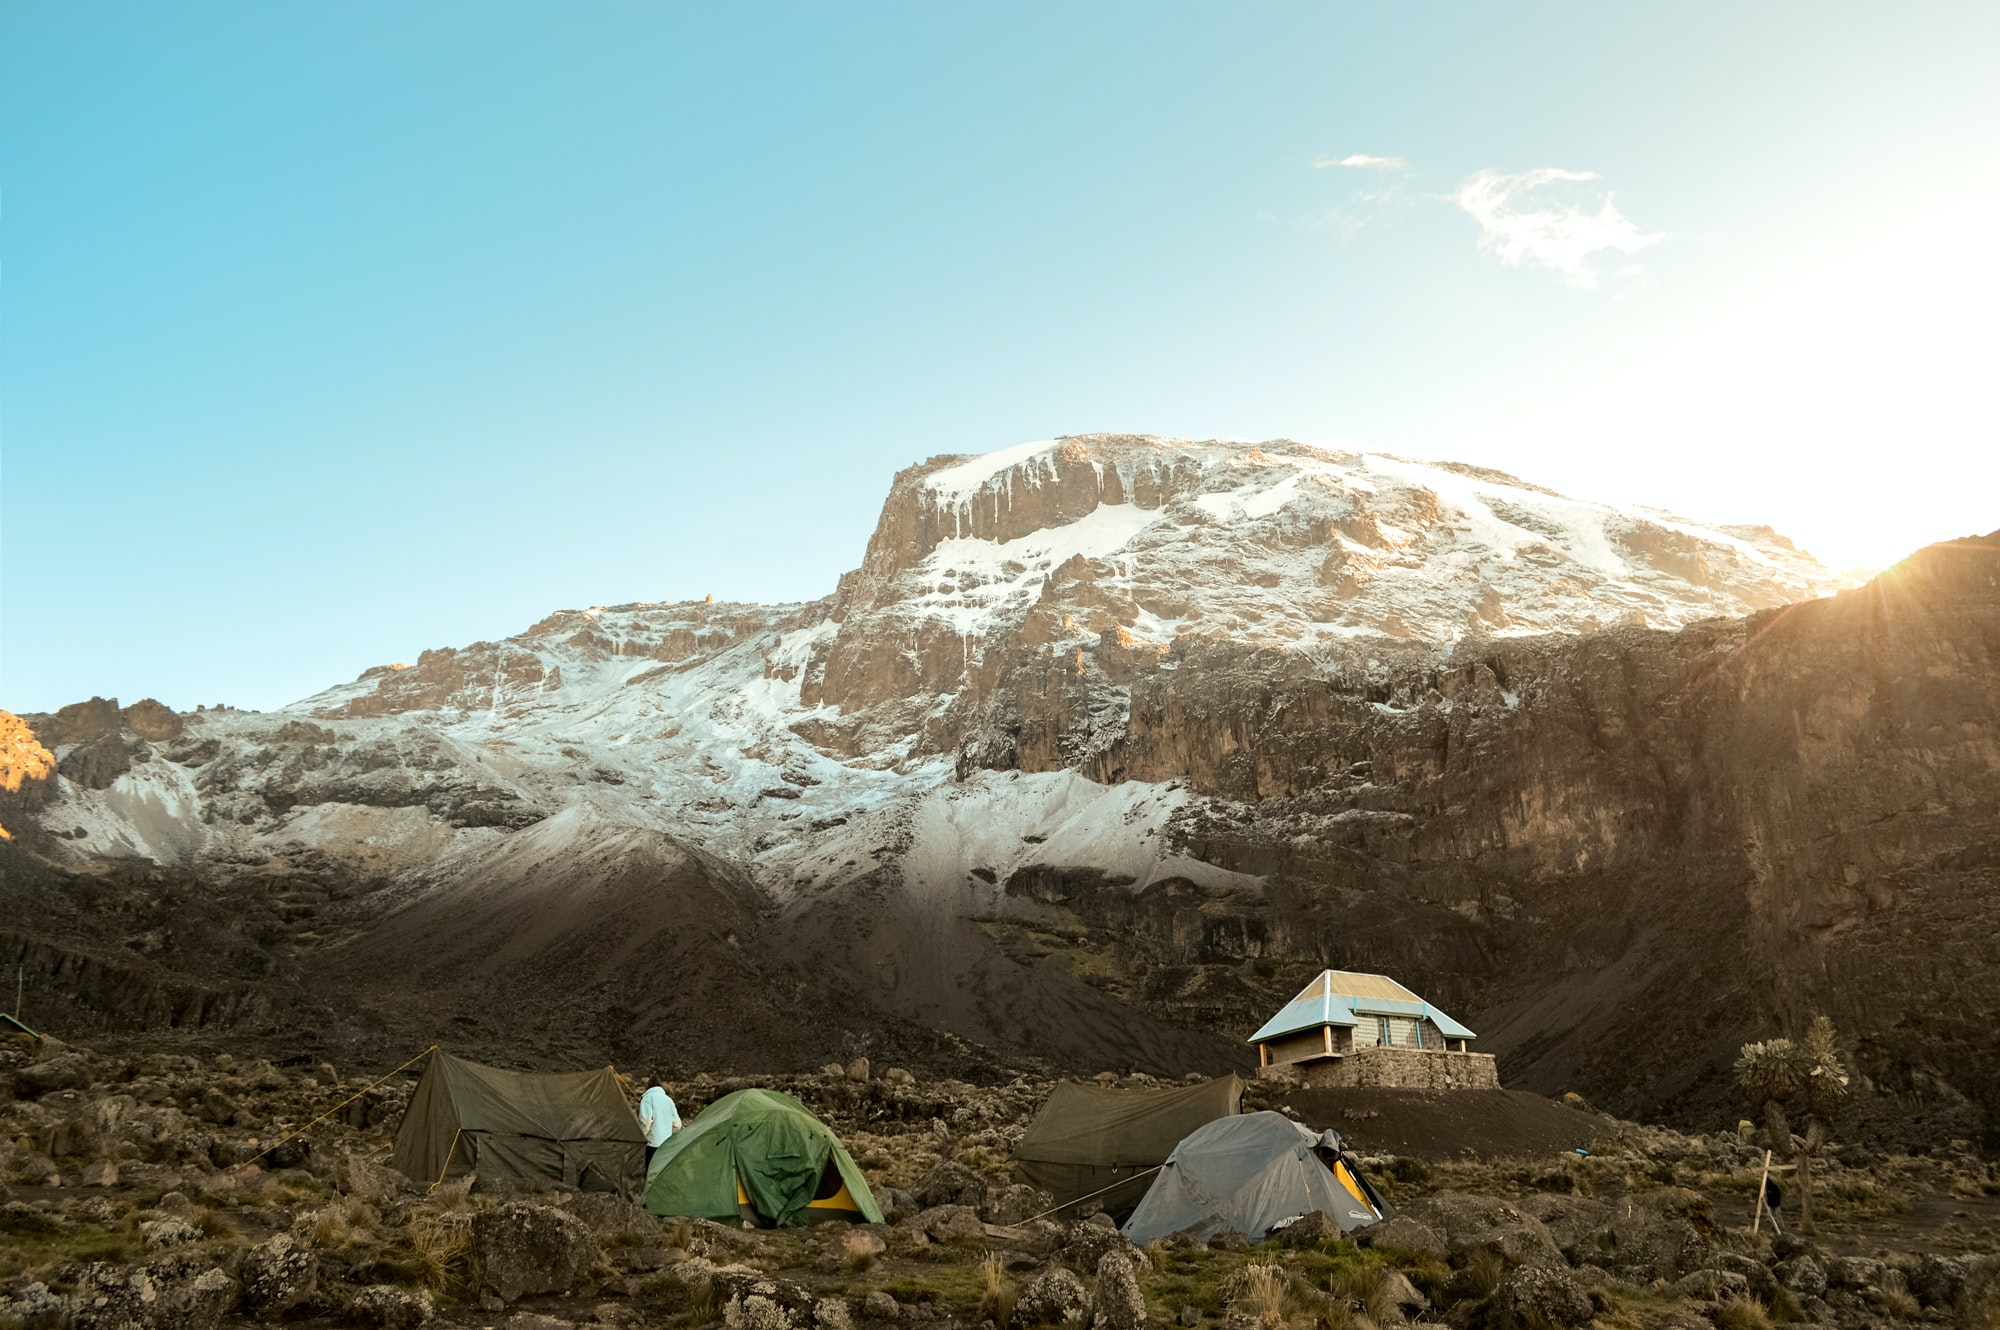 Tents in a field at the bottom of Mount Kilimanjaro with snow on the peaks